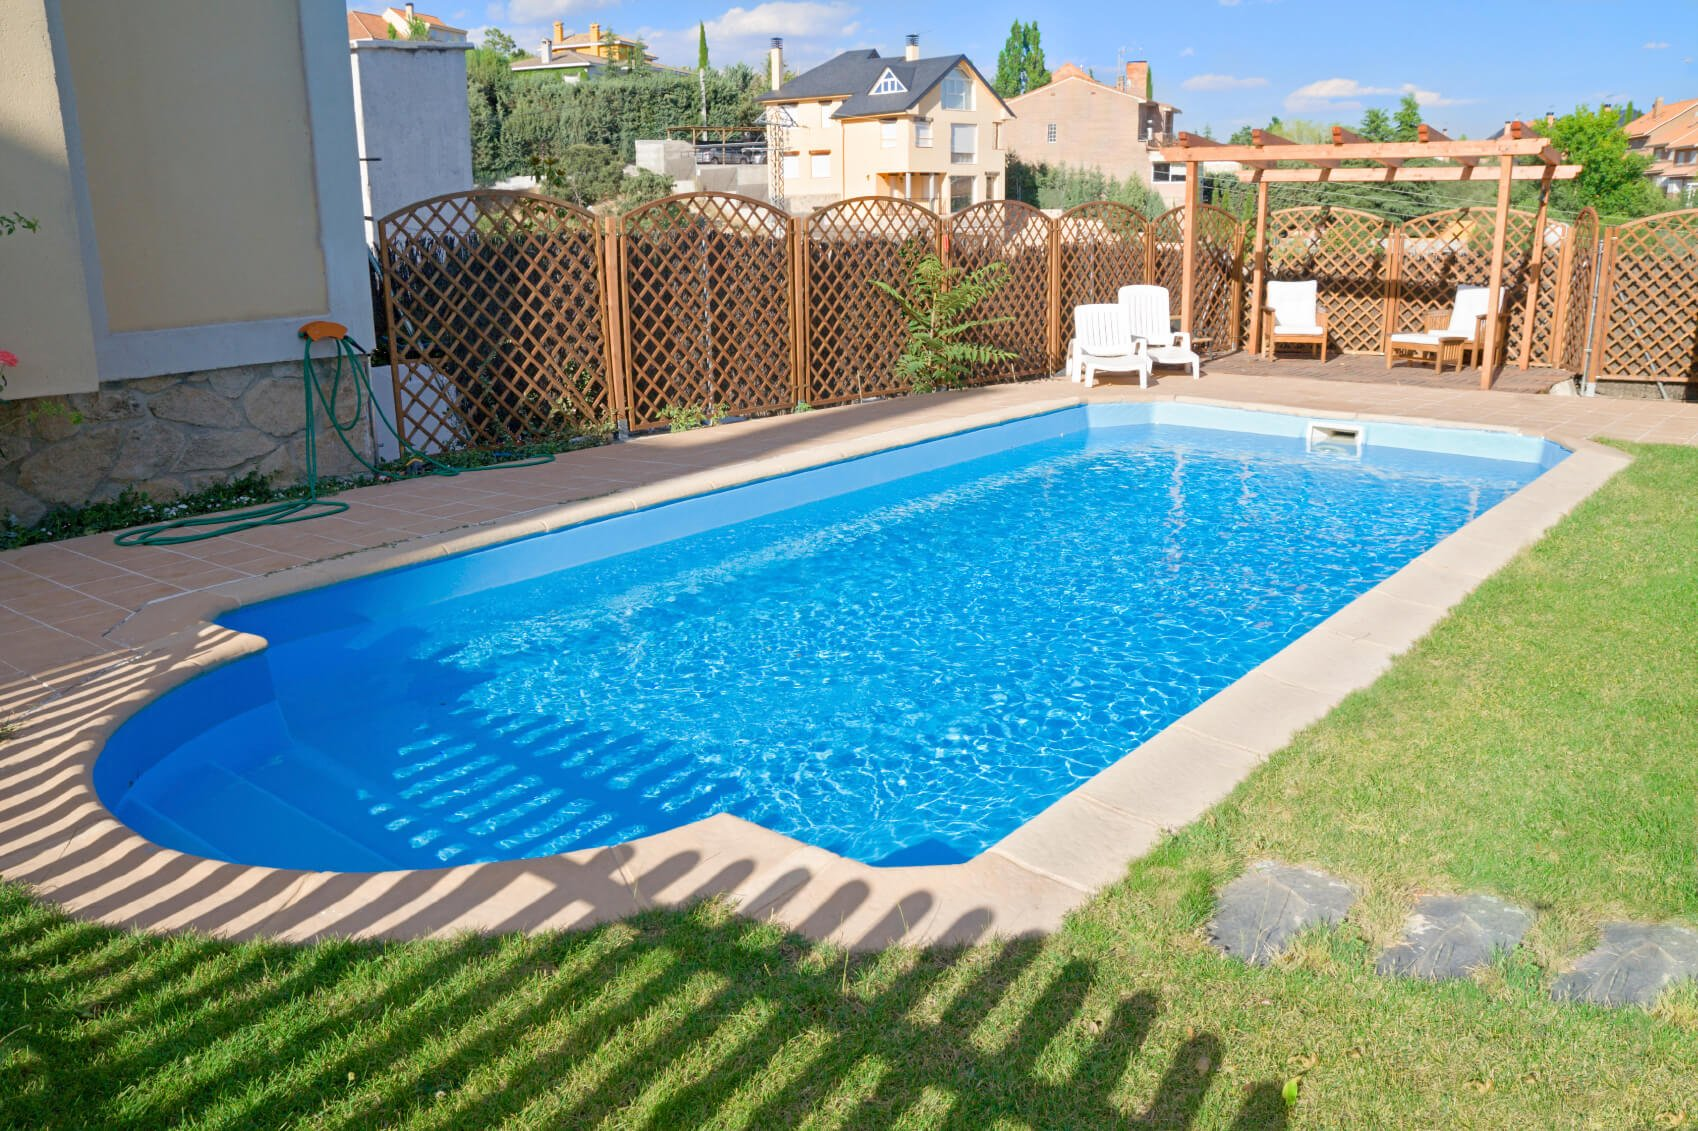 A simple wood lattice is an easy way to fence off a pool with some extra height, without blocking out too much of your view.